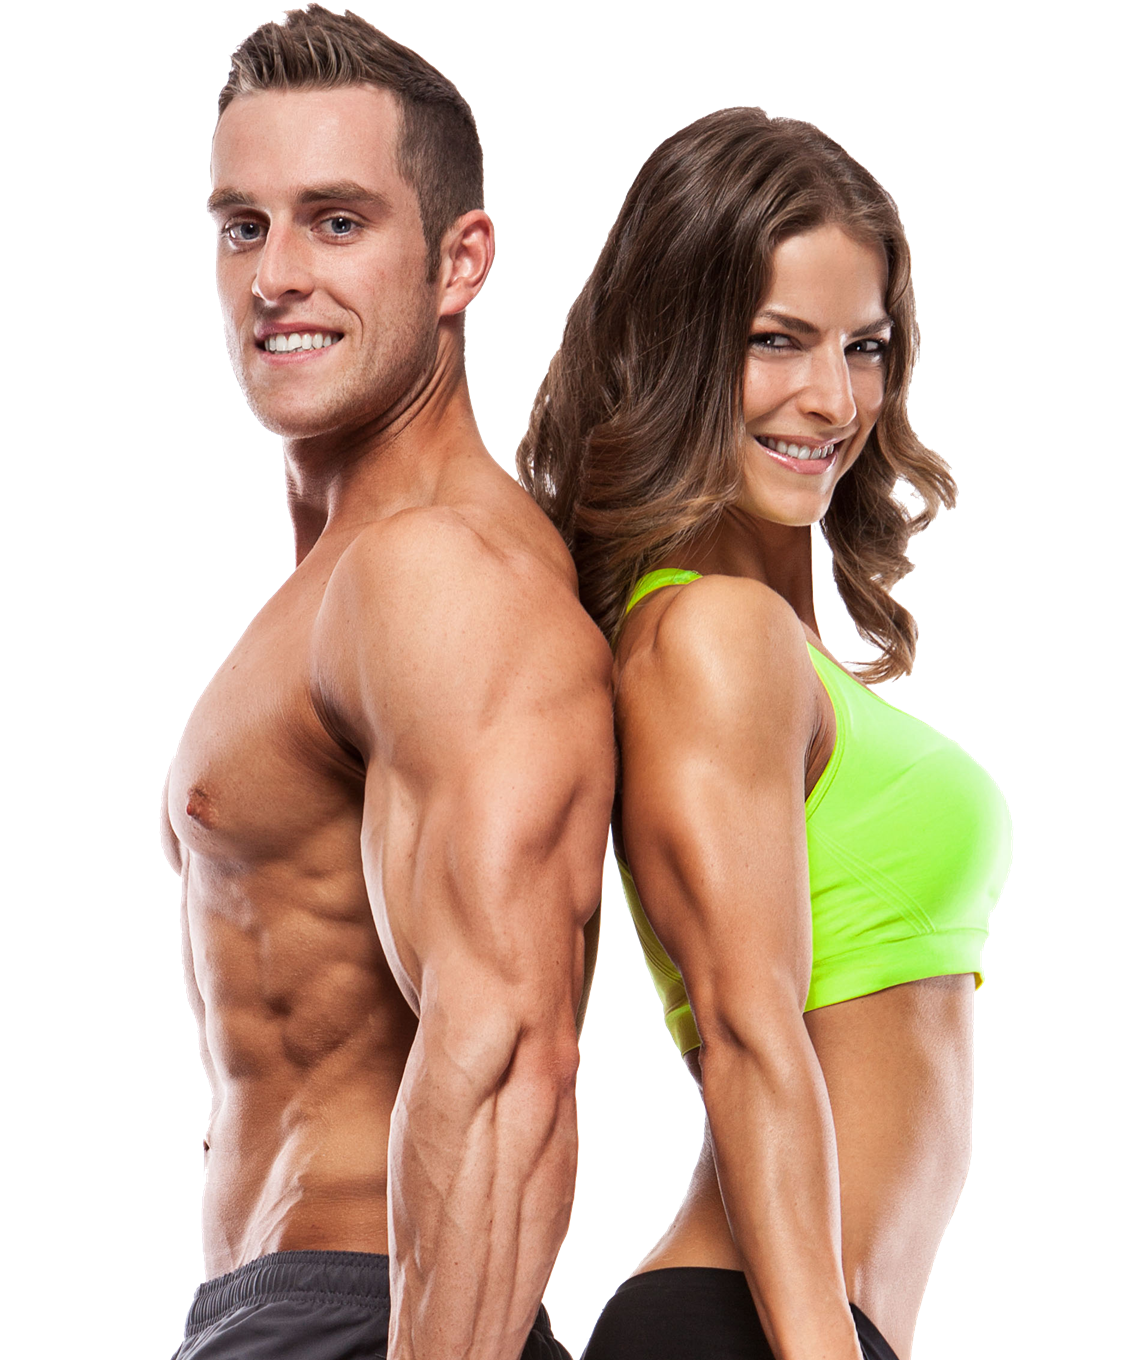 Gym clipart gym guy. Download fitness hq png